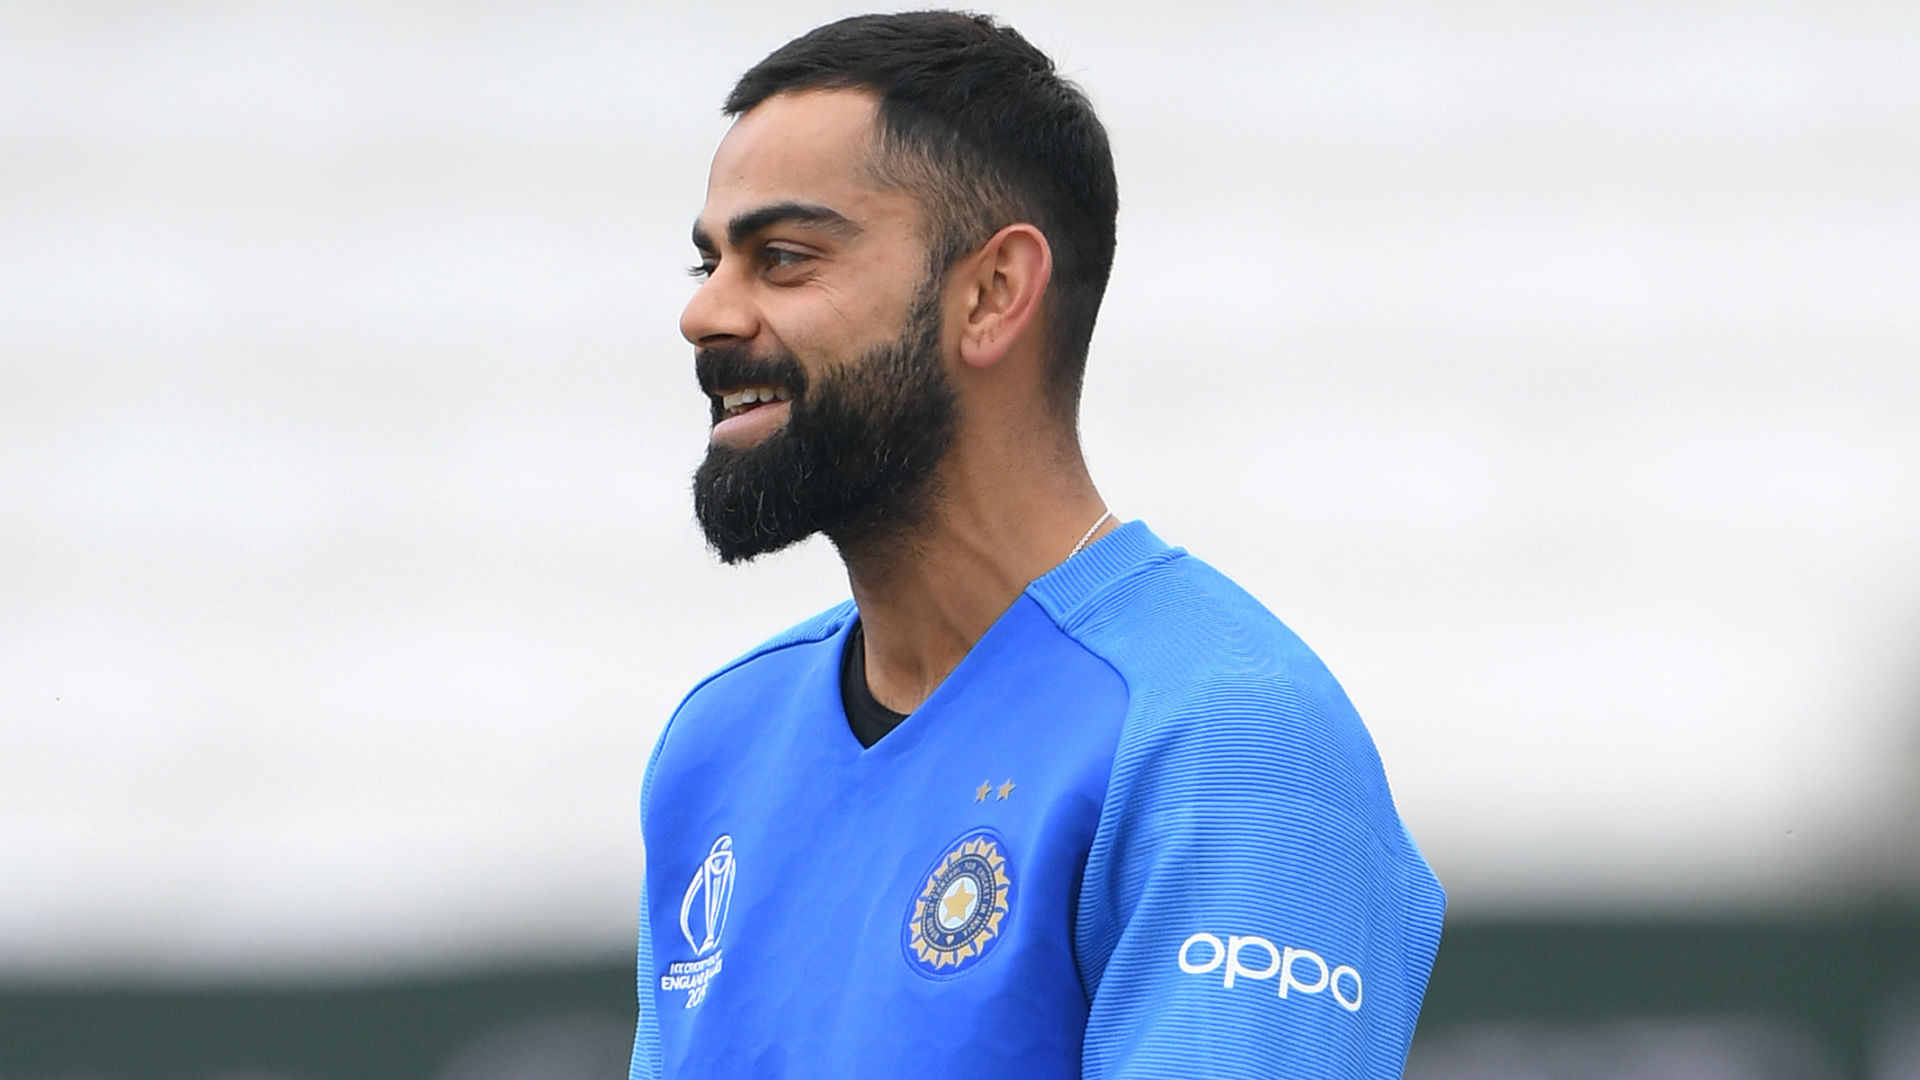 A few words but smiles at the end - Kohli laughs off notebook celebration